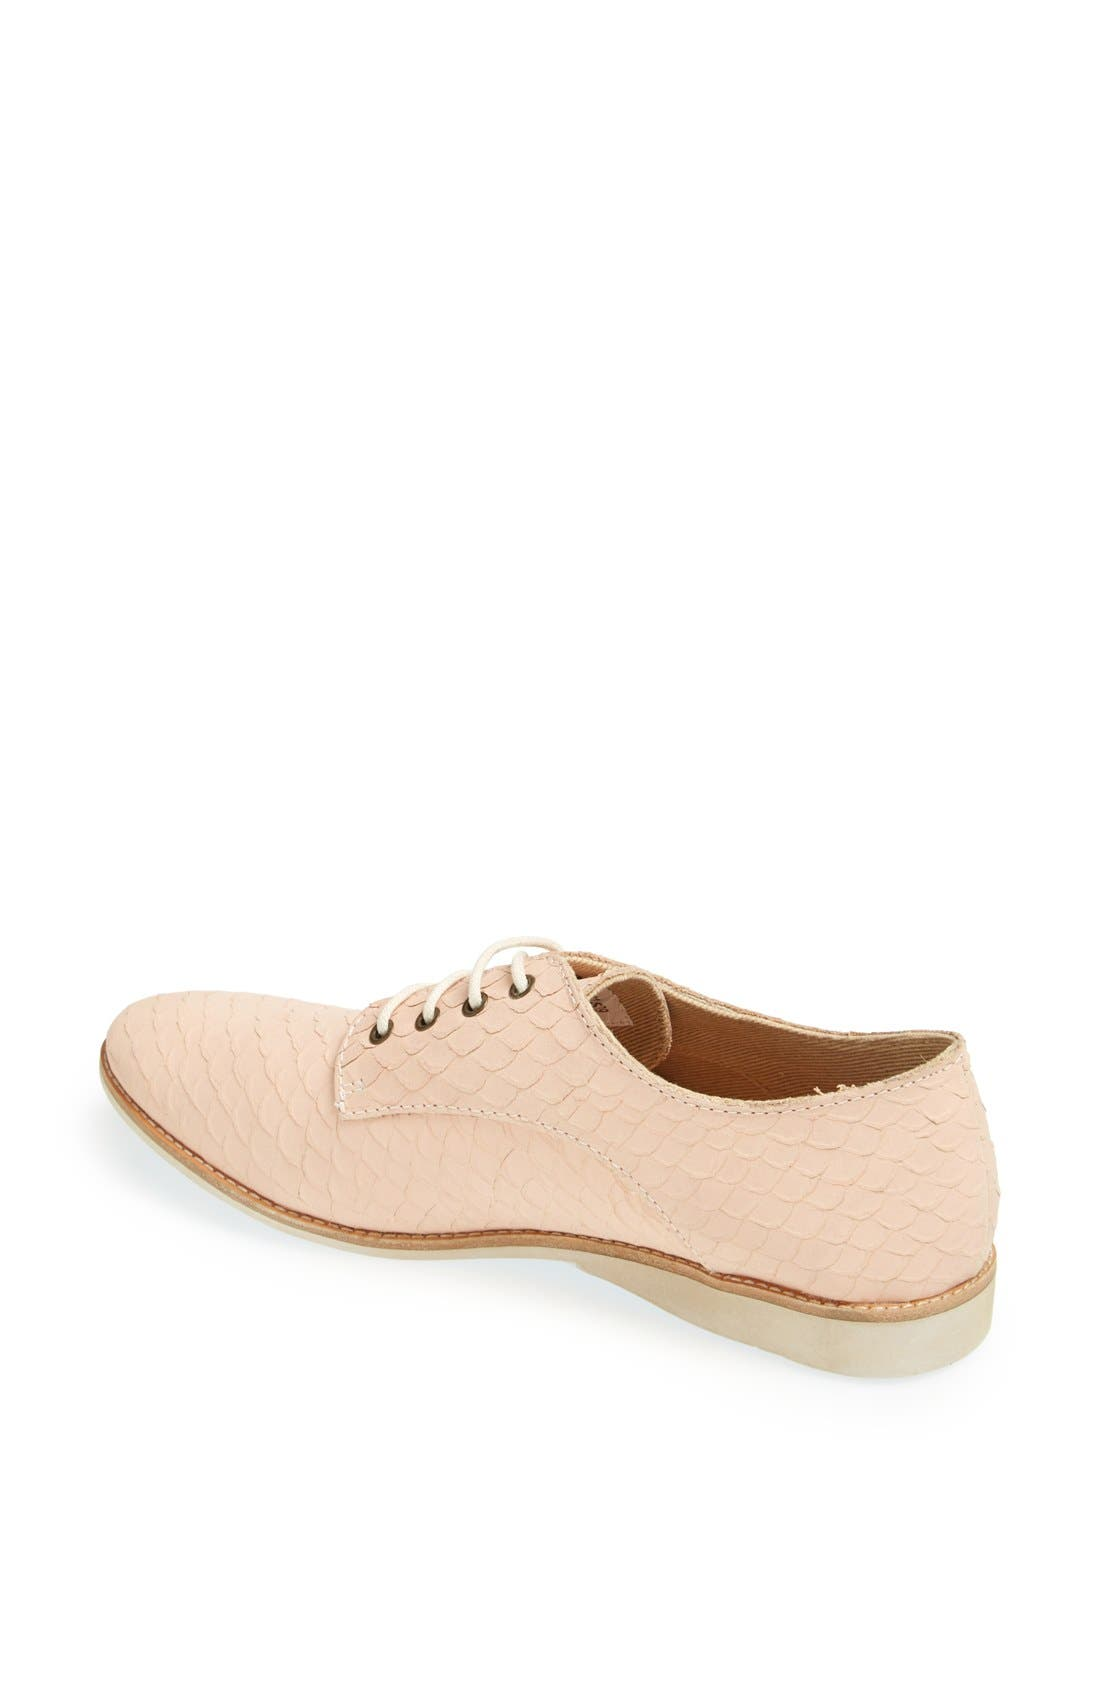 ,                             Derby Oxford,                             Alternate thumbnail 137, color,                             250